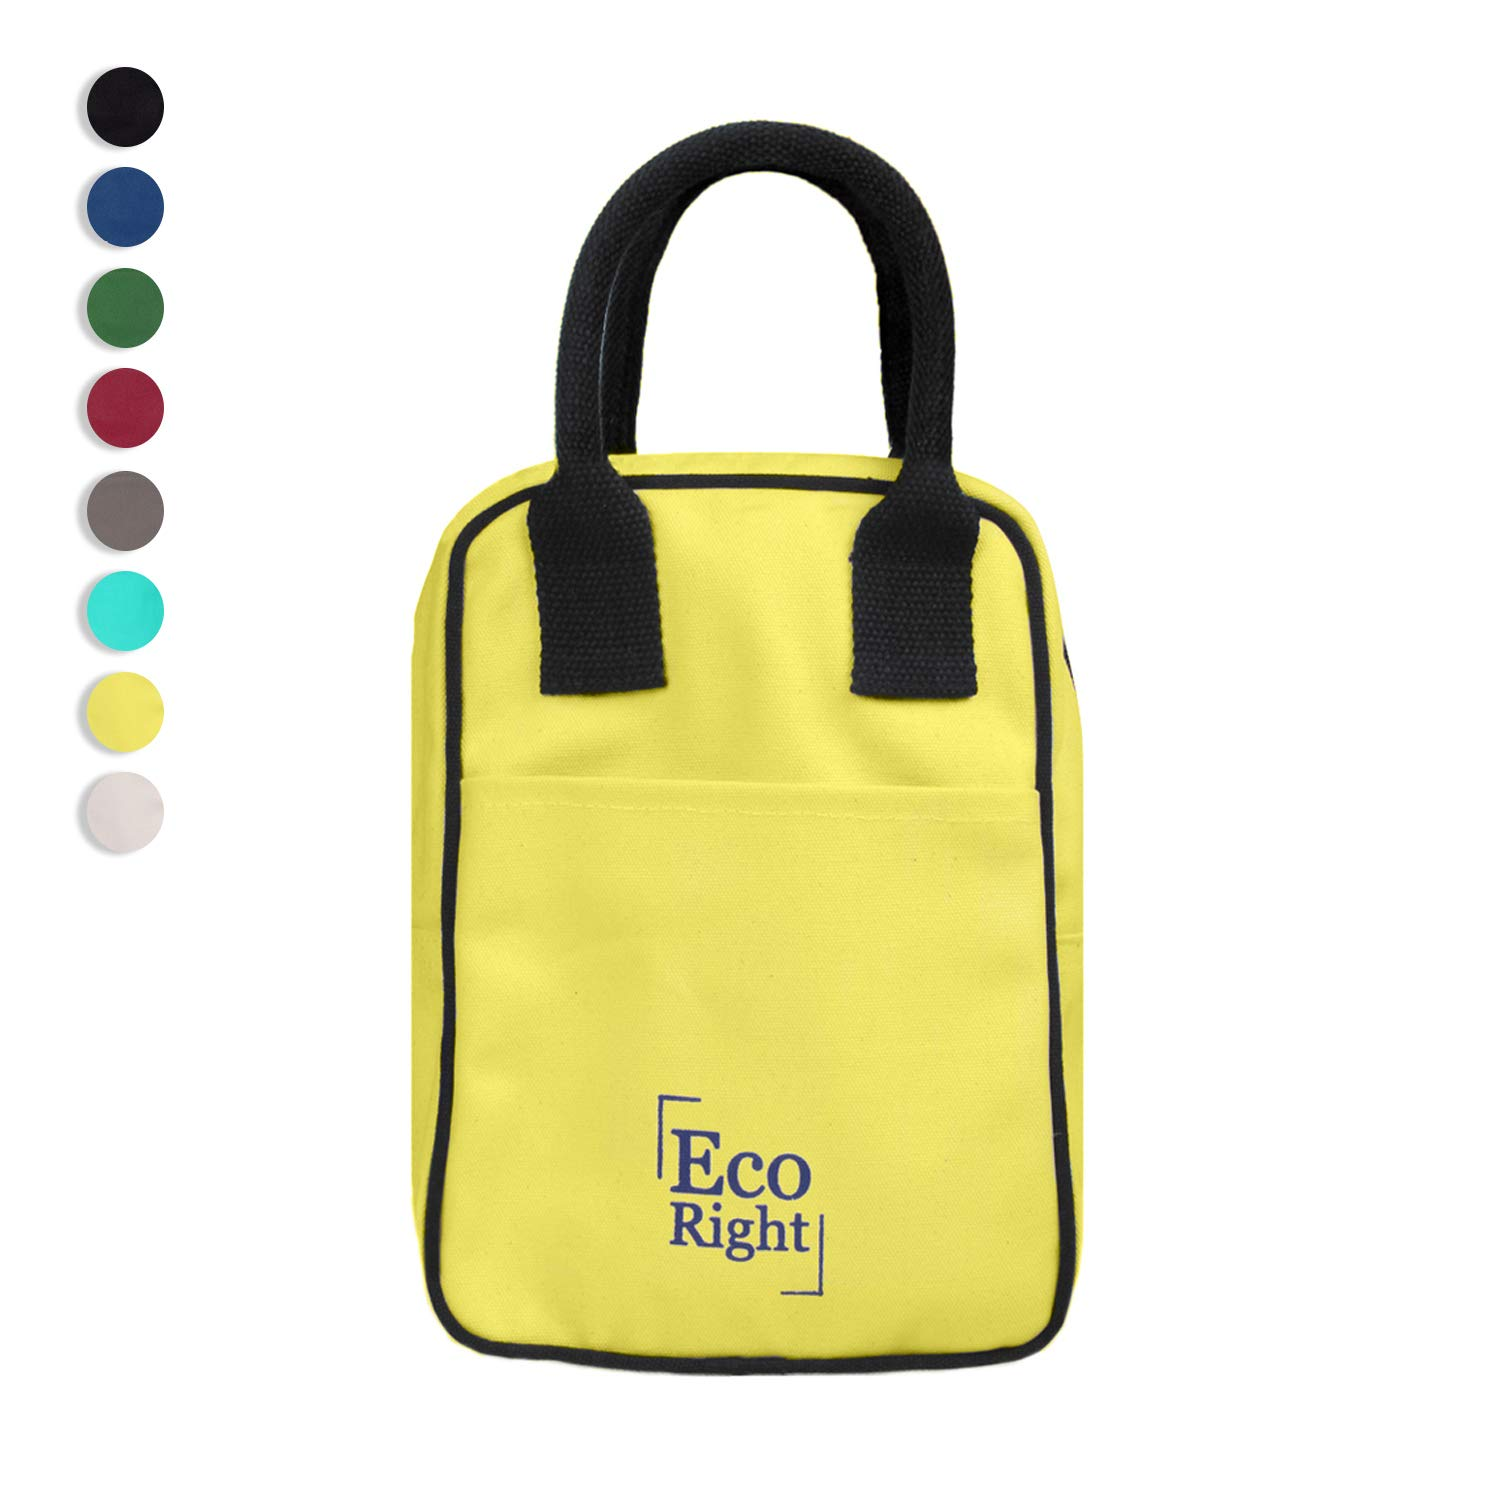 EcoRight Insulated Lunch Bag for Men, Women, Lunch Box for Kids, Adults, Eco-Friendly Leakproof Reusable Cooler Bags with Bottle Holder for Work, School, Office, Gifts for Men 8L | Yellow | 0705